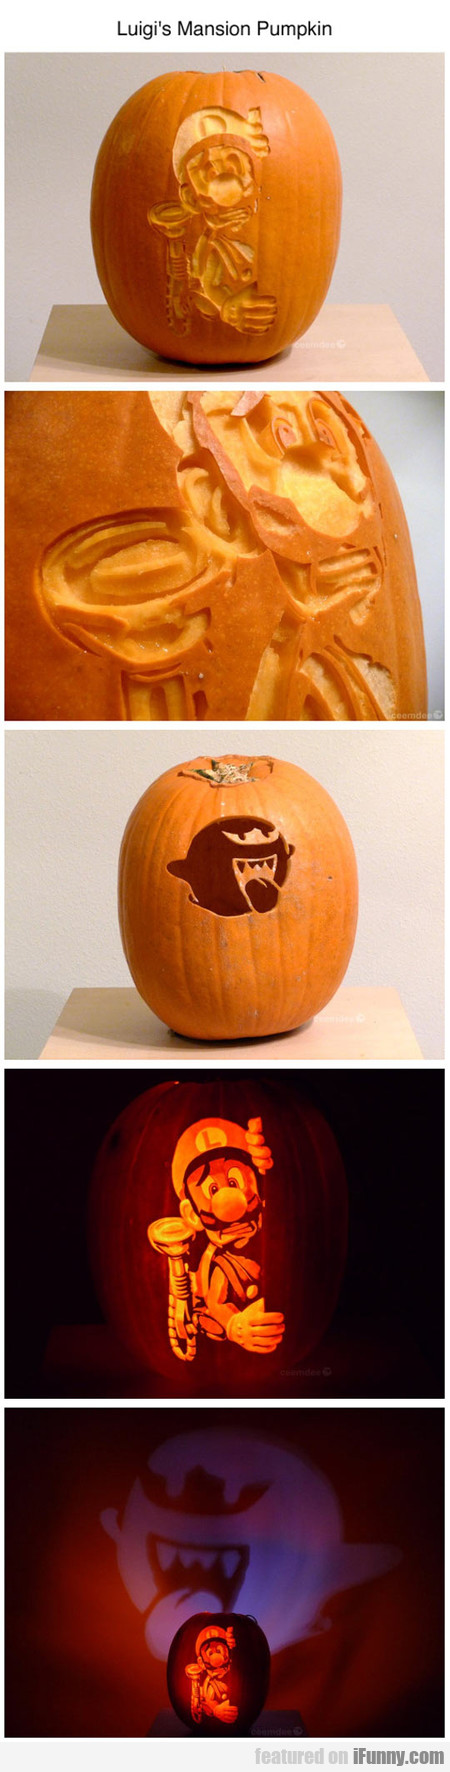 This Pumpkin Is Brilliant